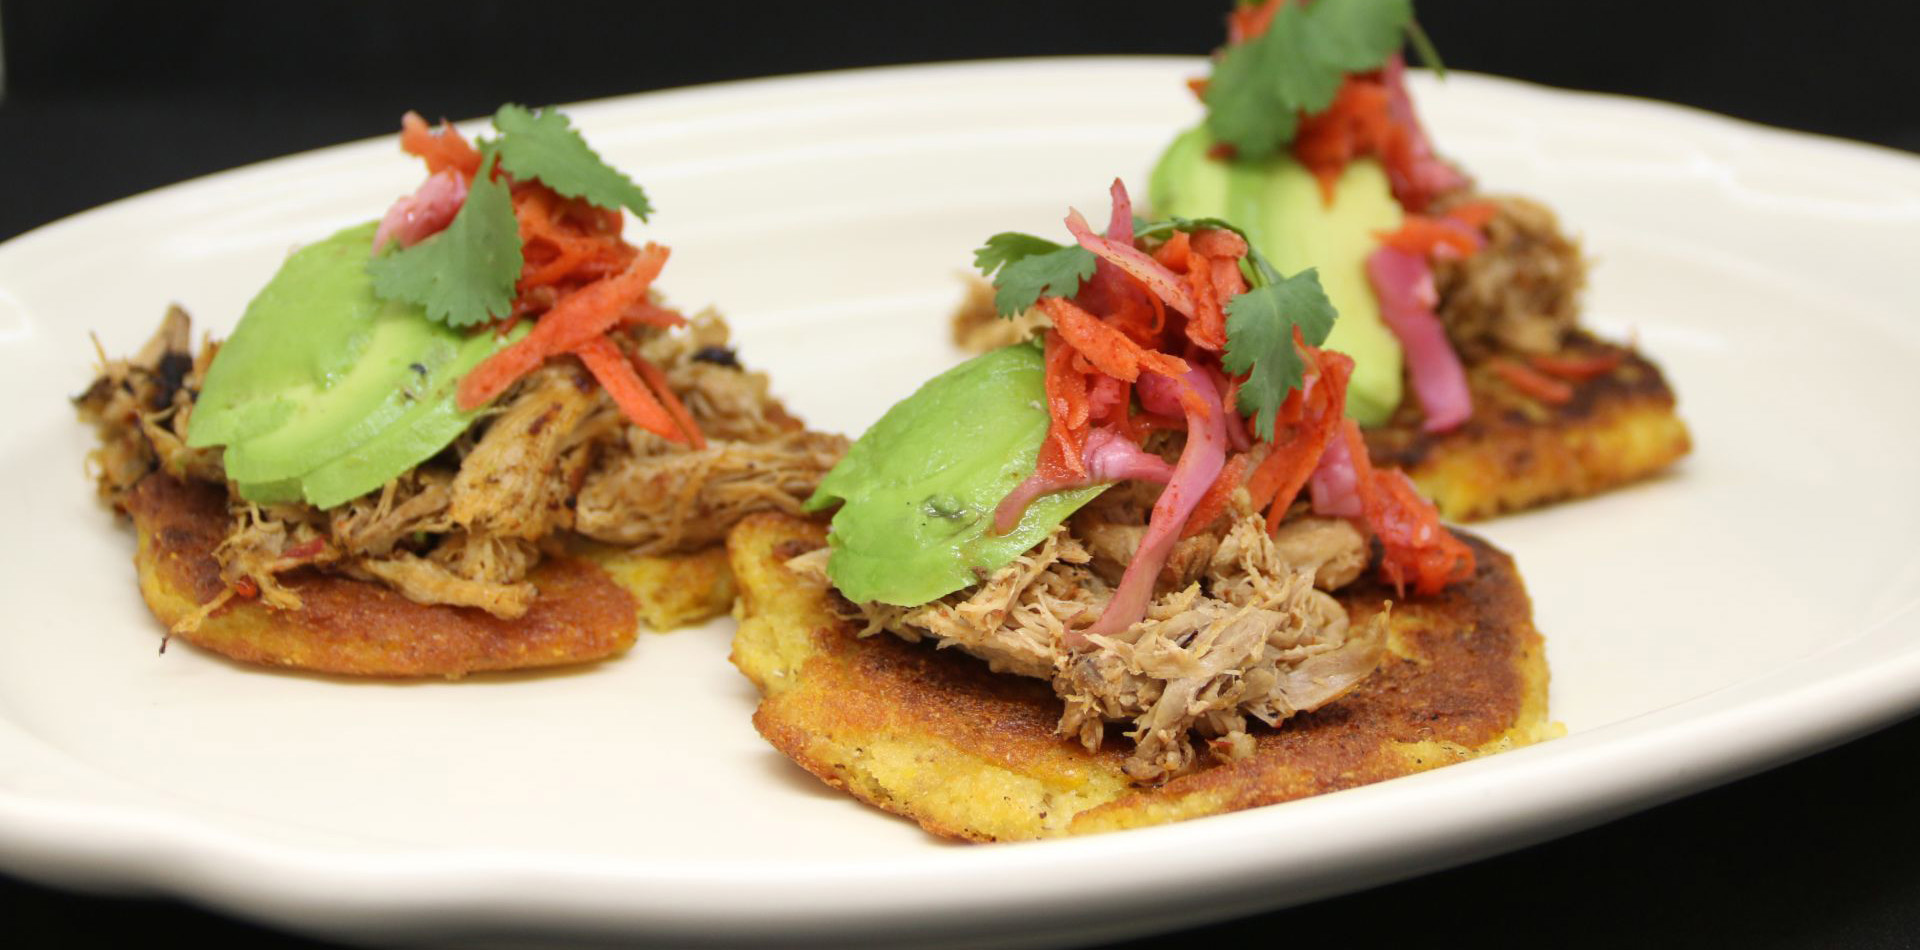 pulled pork tacos with  avocado, pickled red onion, and cilantro